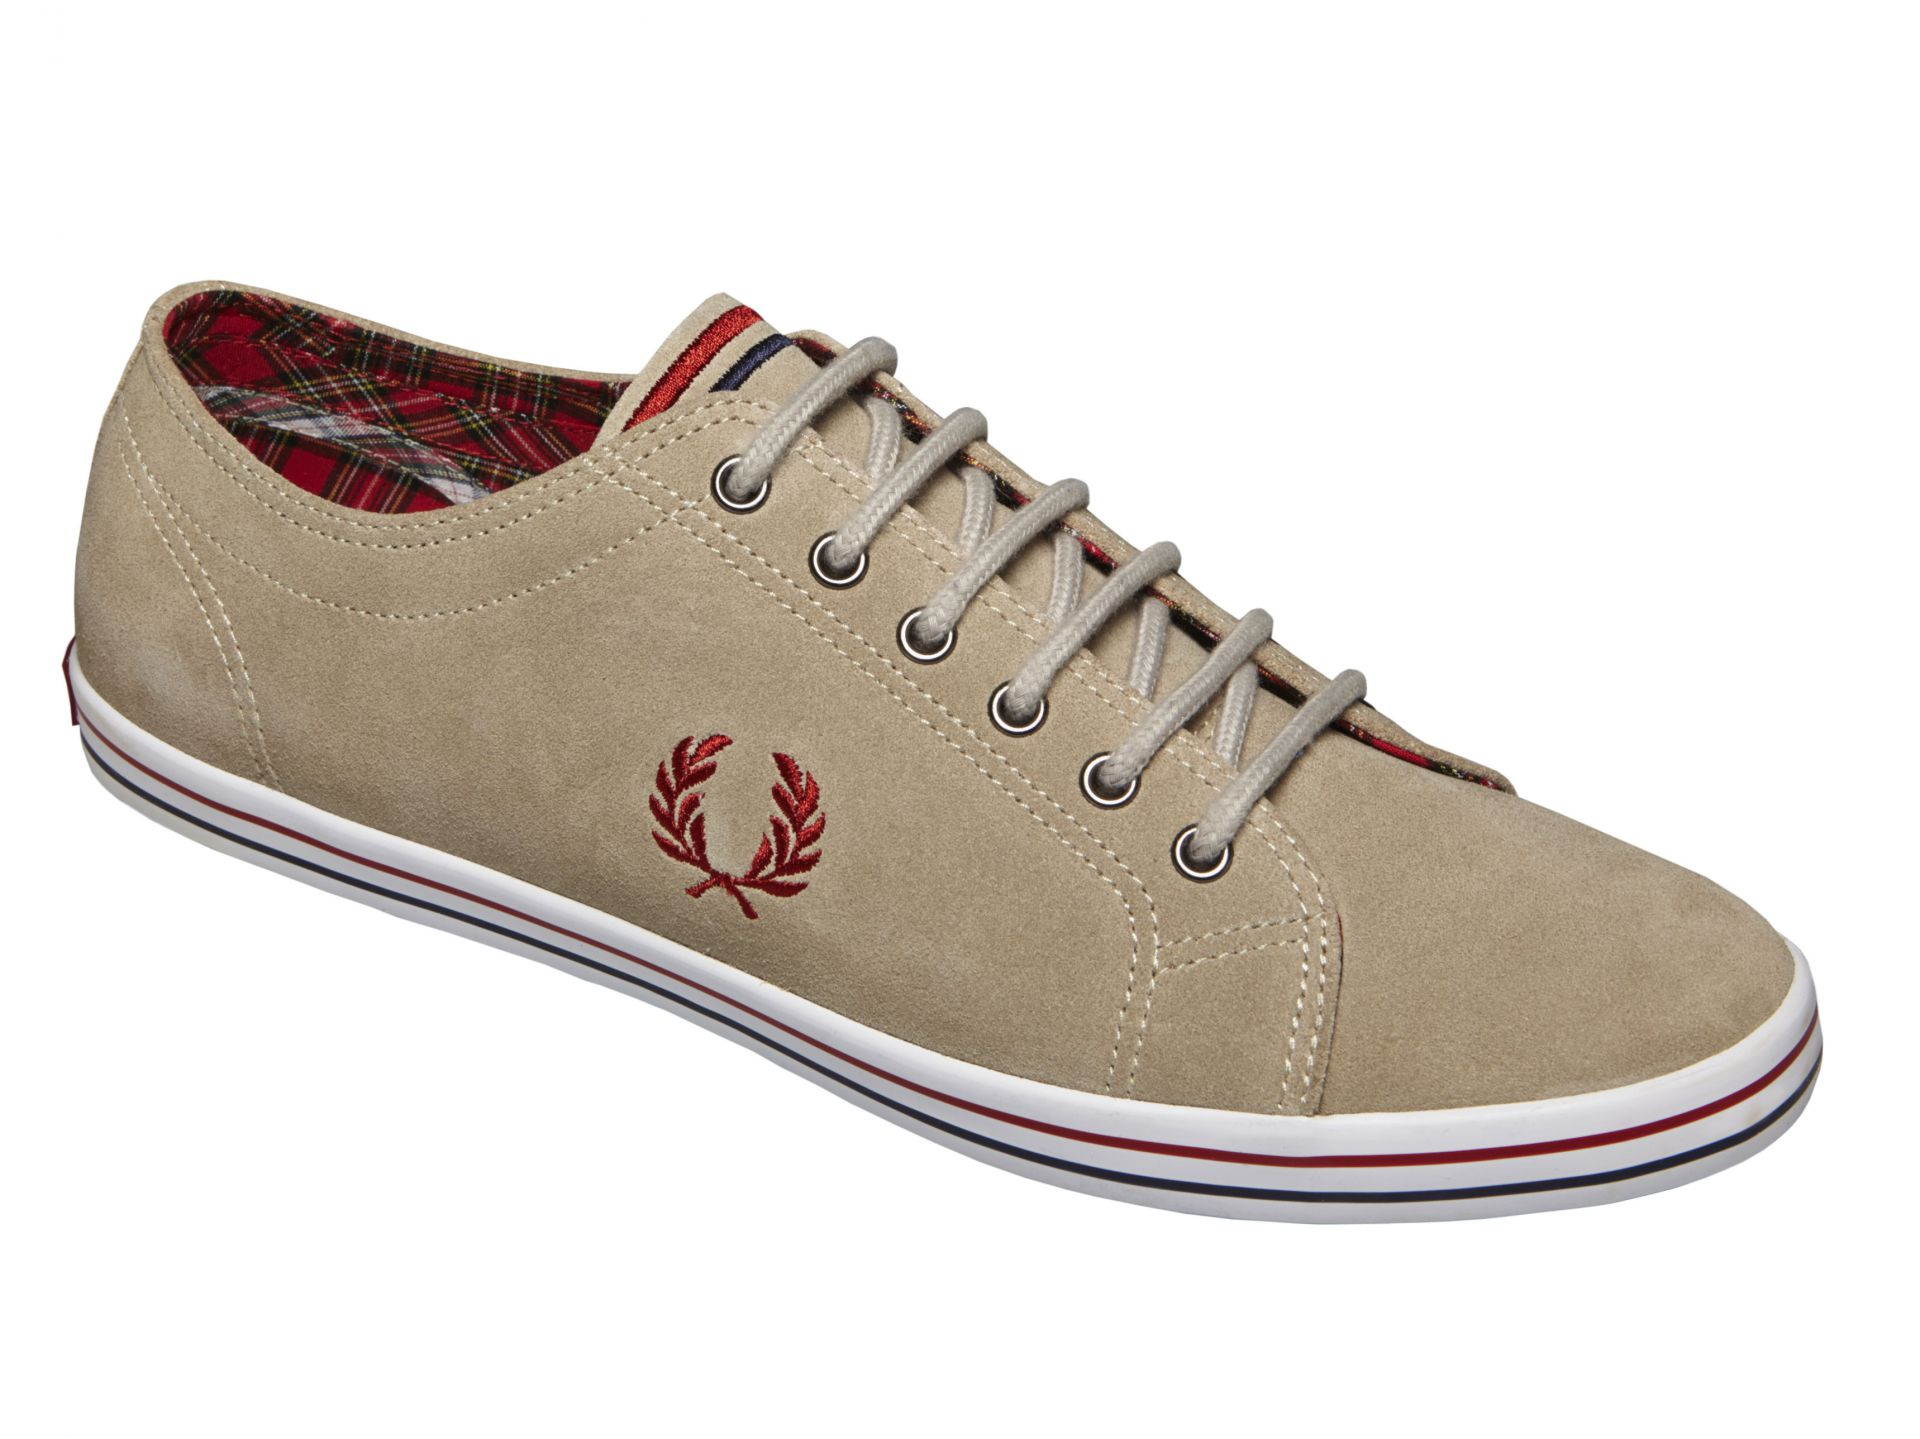 Fred Perry Men's Kingston Suede Shoe - Sand - 7